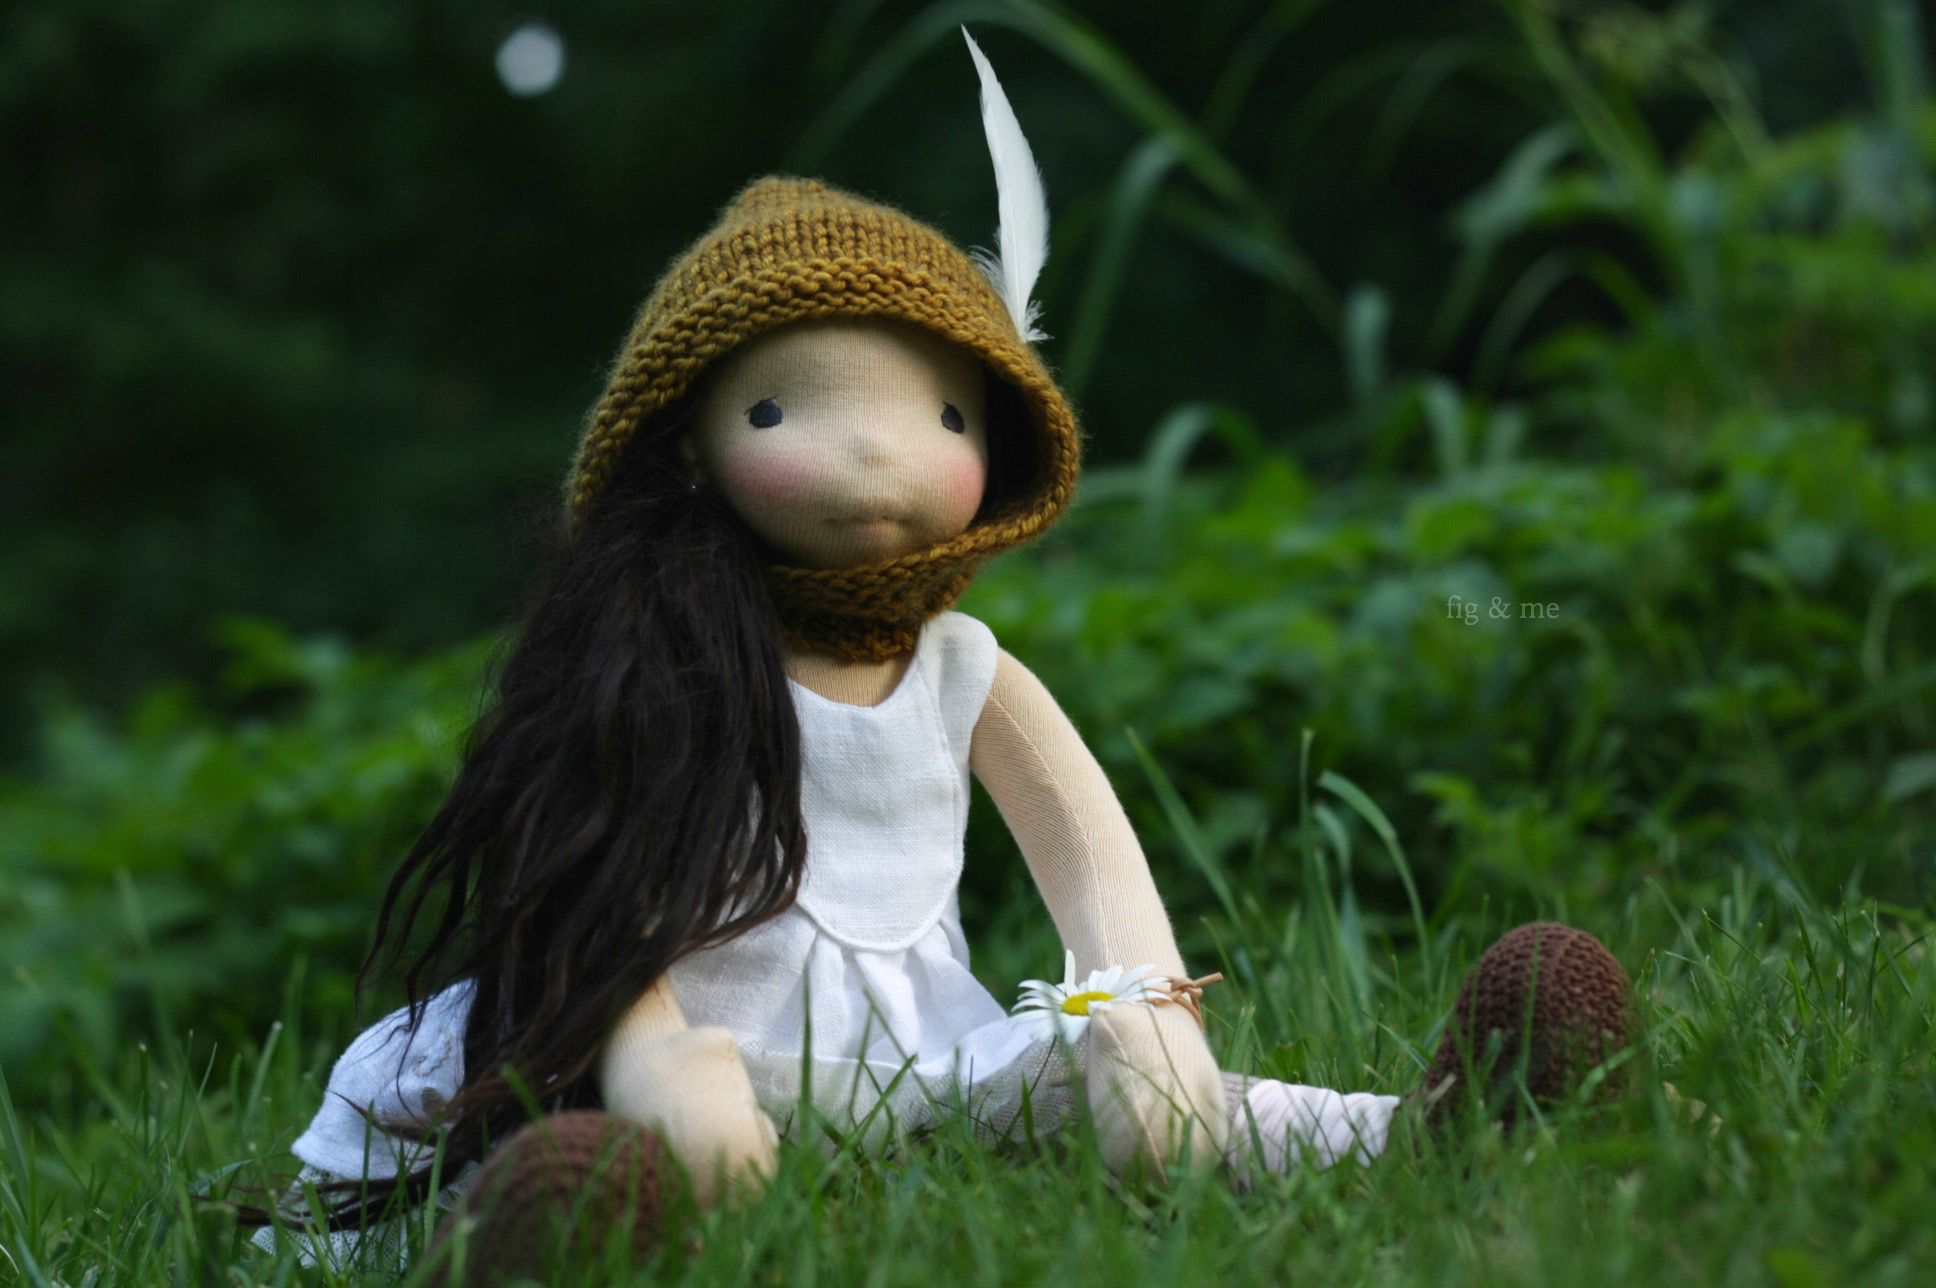 Seraphita playing Robin Hood, by Fig and me